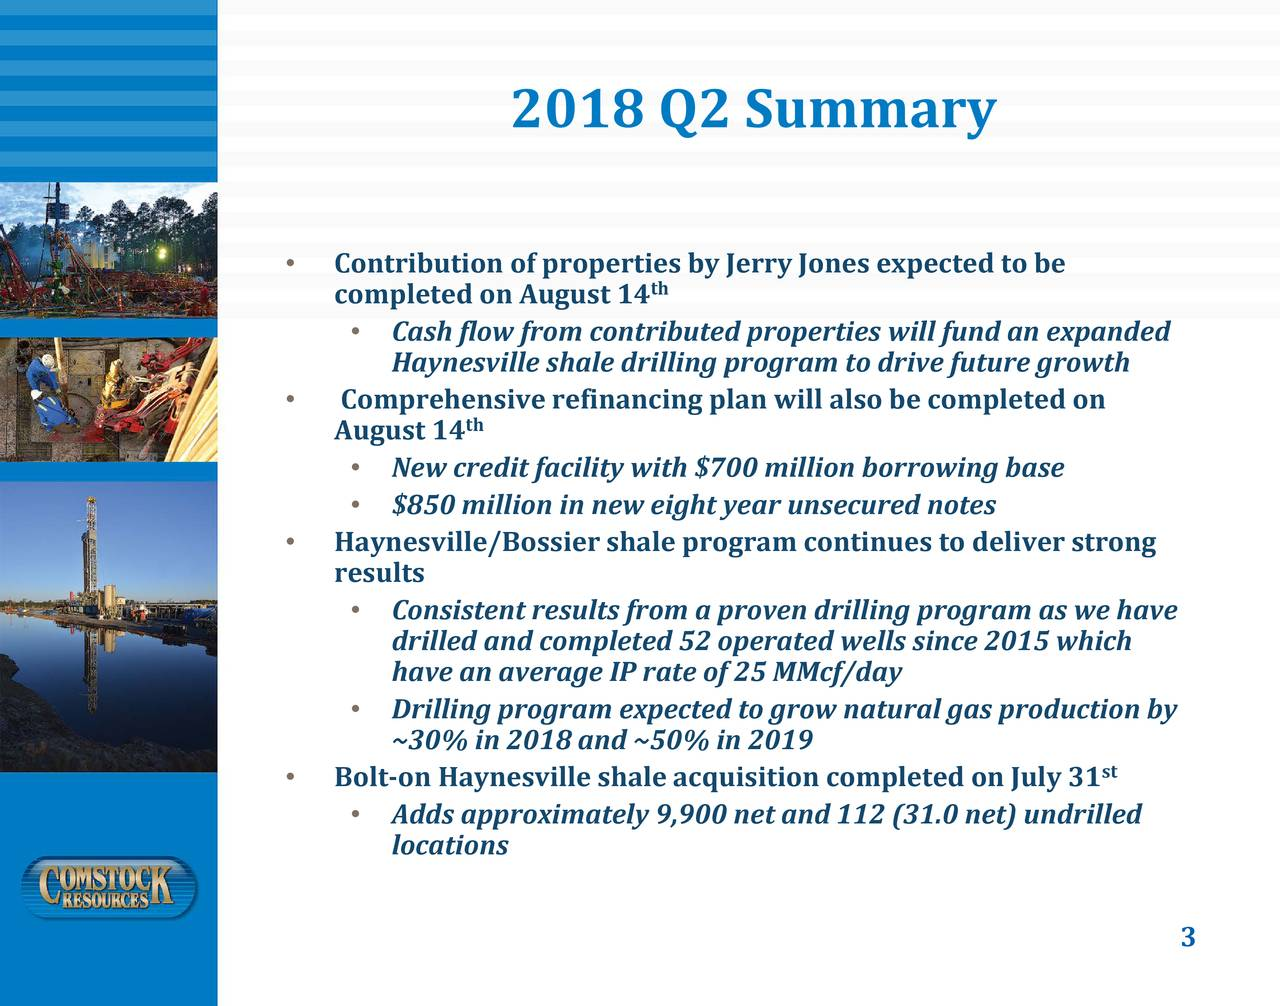 • Contribution of properties by Jerry Jones expected to be th completed on August 14 • Cash flow from contributed properties willfund an expanded Haynesville shale drilling program to drive future growth • Comprehensiverefinancing plan will also be completed on August 14 th • New credit facility with $700 million borrowing base • $850 million in new eight year unsecured notes • Haynesville/Bossier shale program continues to deliver strong results • Consistent results from a proven drilling program as we have drilled and completed 52 operated wells since 2015 which have an average IP rate of 25 MMcf/day • Drilling program expected to grow natural gas production by ~30% in 2018 and ~50% in 2019 • Bolt-on Haynesville shale acquisition completed on July 31 st • Adds approximately 9,900 net and 112 (31.0 net)undrilled locations 3